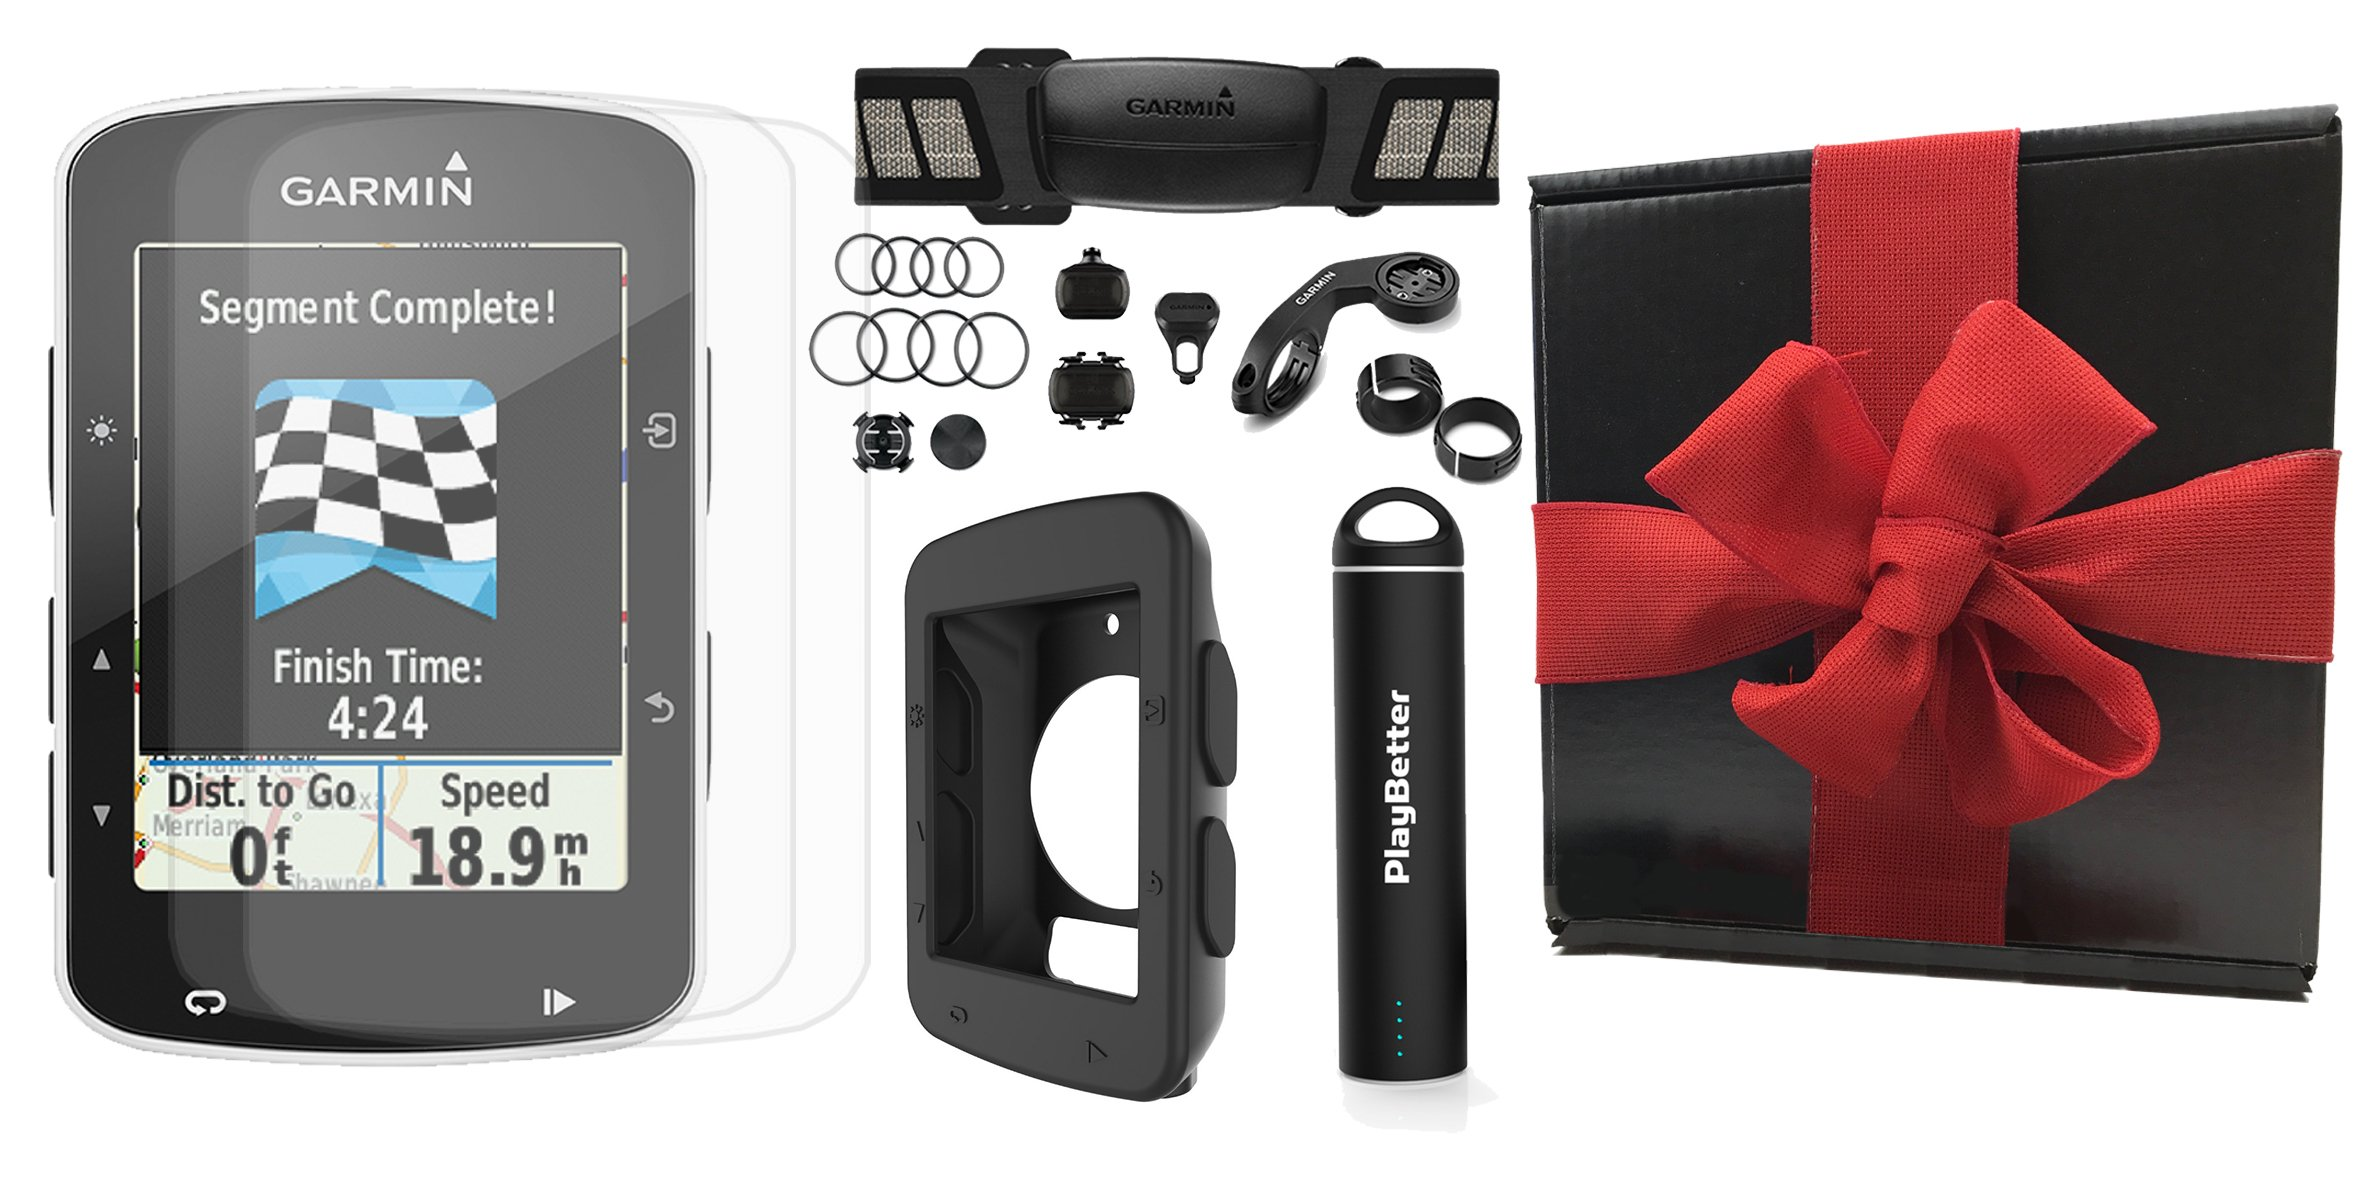 Garmin Edge 520 Gift Box Bundle | with PlayBetter Silicone Case, Portable Charger & HD Screen Protectors | Bike Mounts | GPS Bike Computer (+Chest HRM +Speed/Cadence Sensors, Black Case, Gift Box)